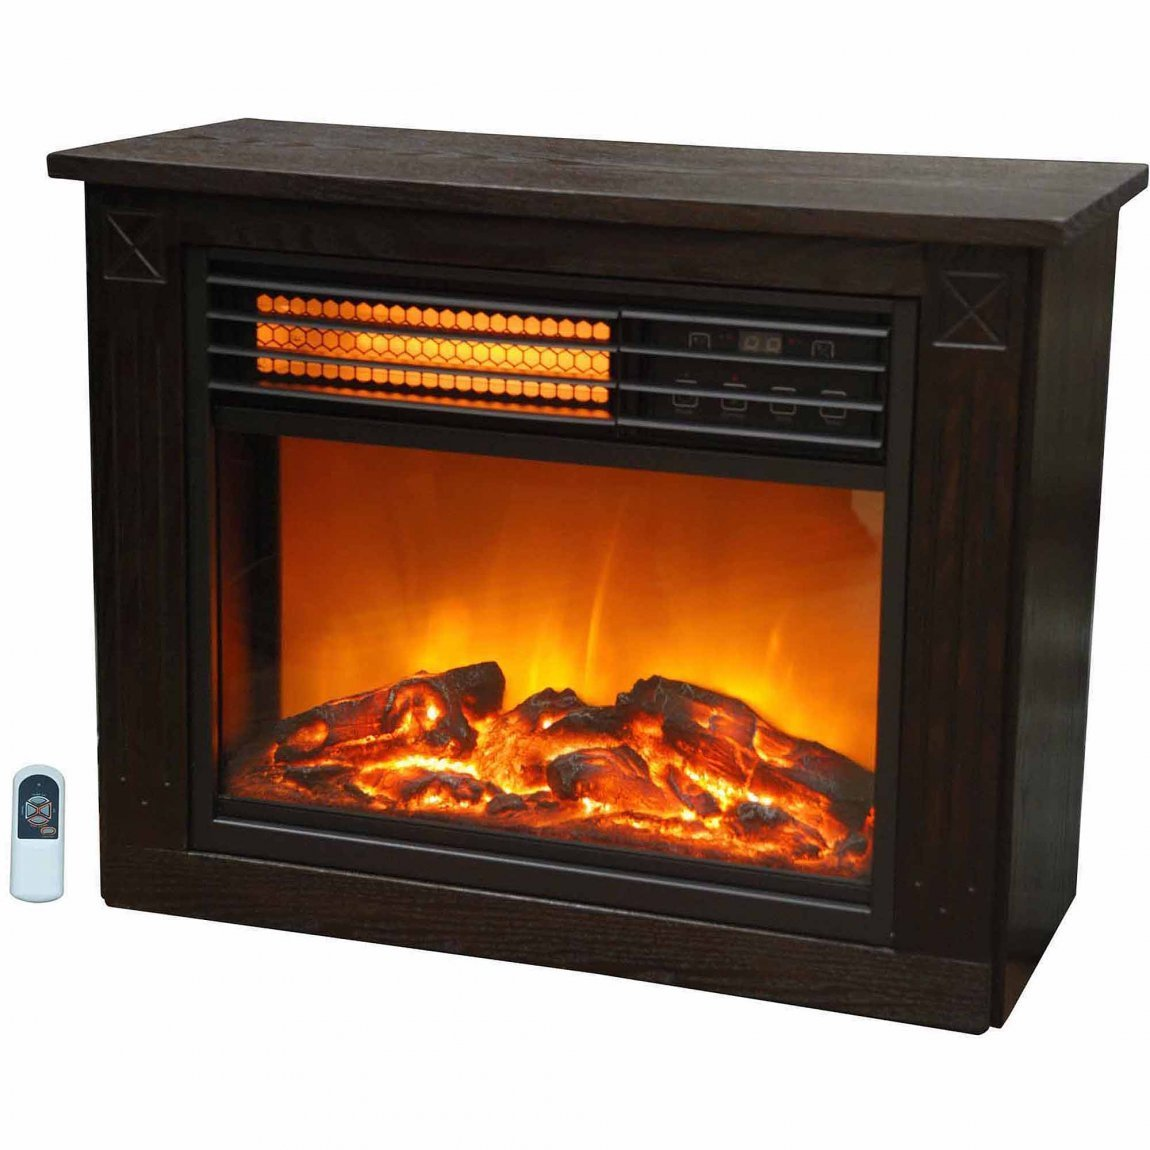 Best Small Space Heater The Best Bedroom Home Depot Electric With Pictures